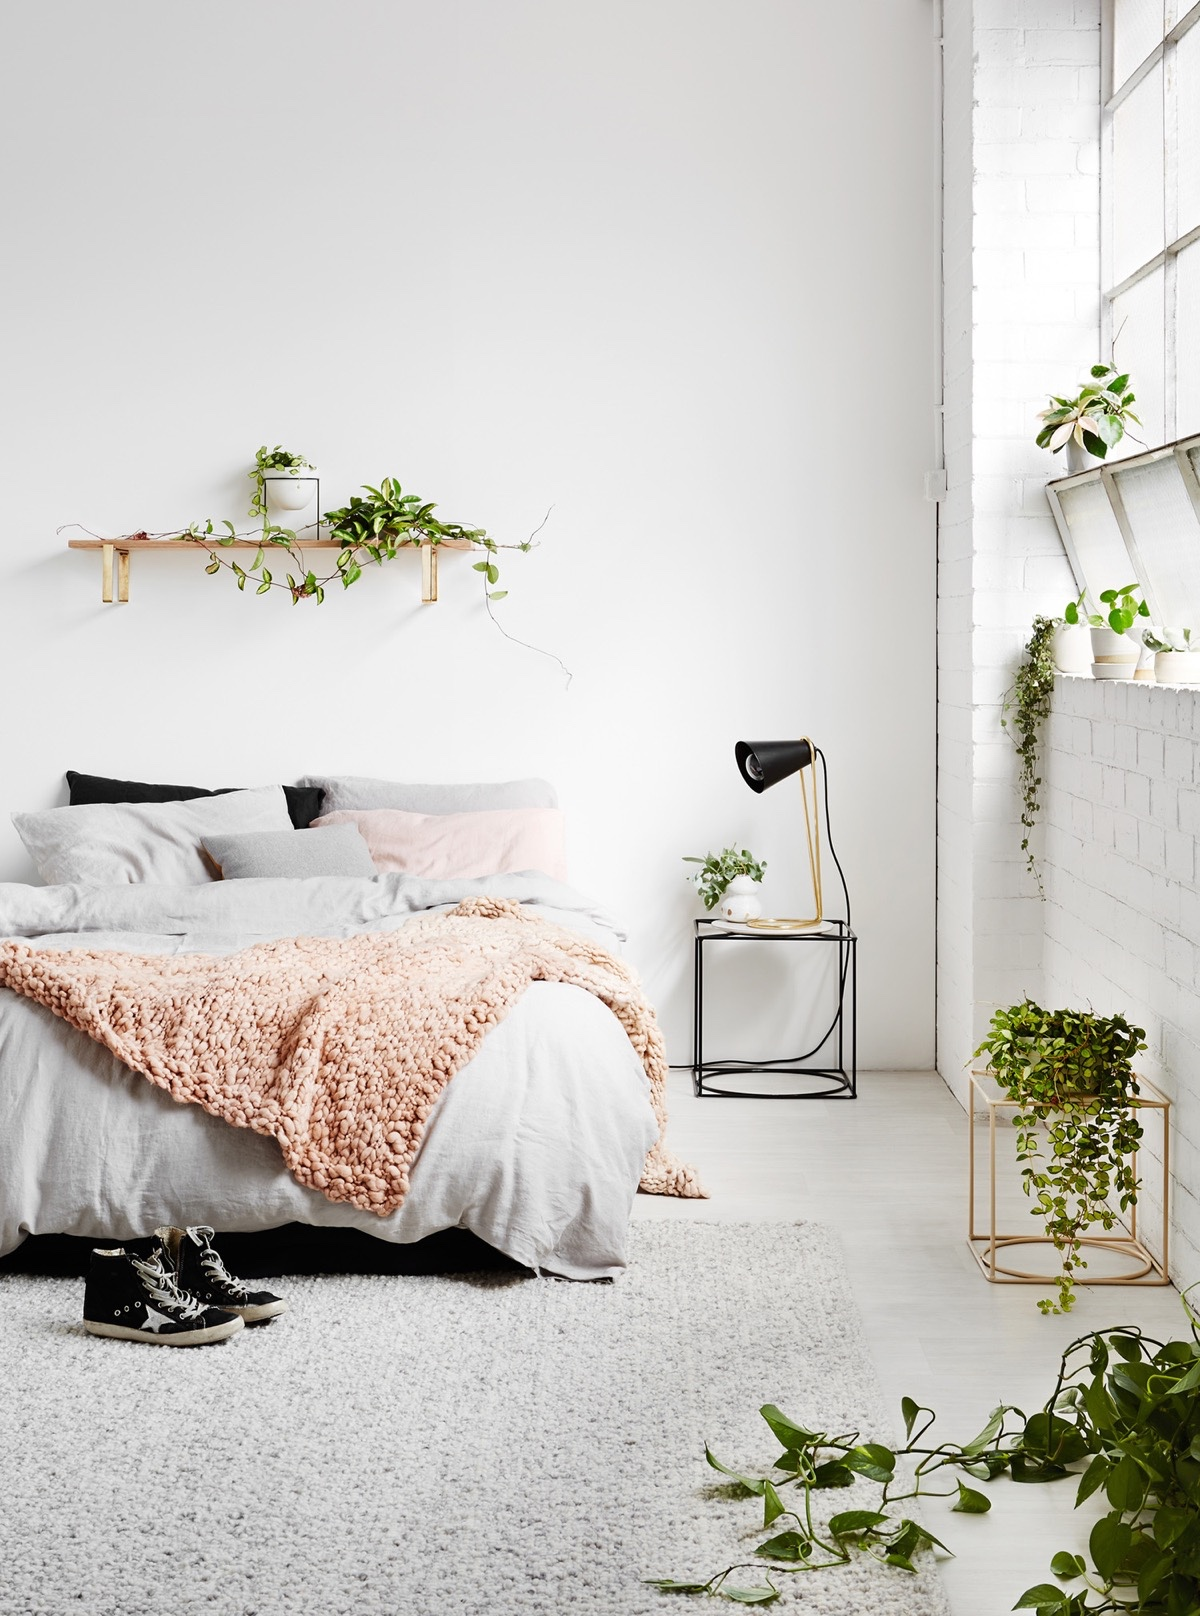 Minimalist with natural elements Charismatic Minimalist Bedroom Ideas That Low On Clutter But Big On Style